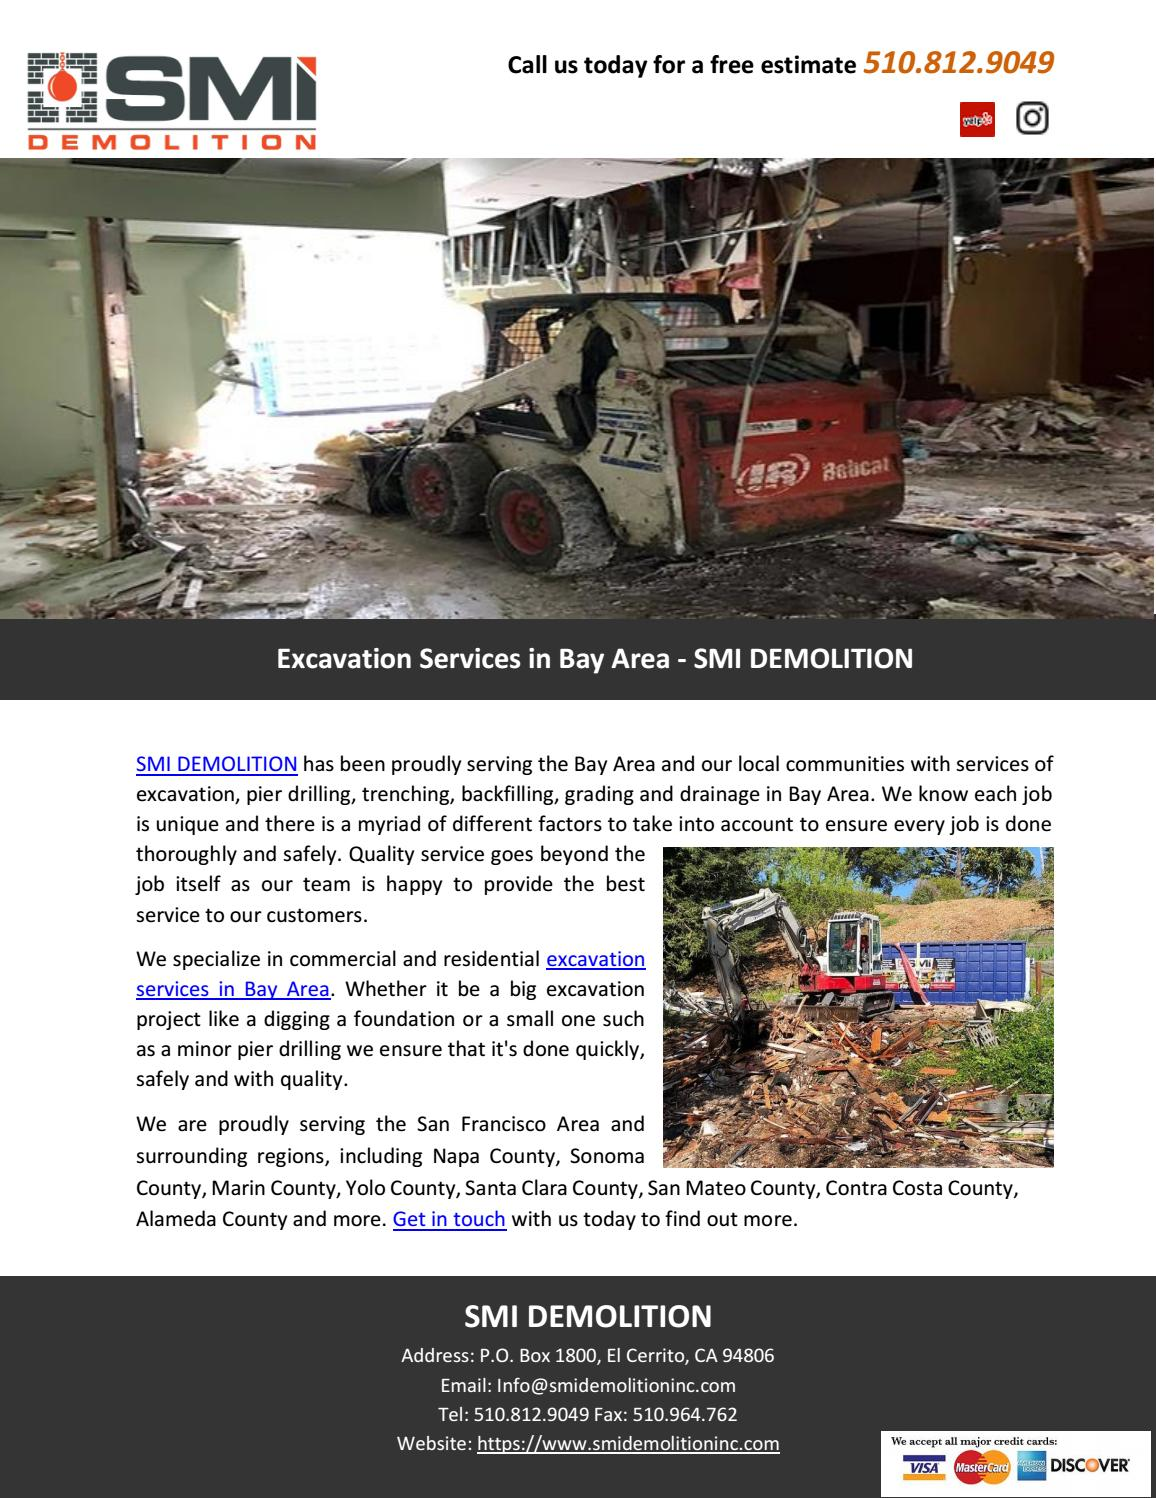 Excavation Services in Bay Area - SMI DEMOLITION by SMI